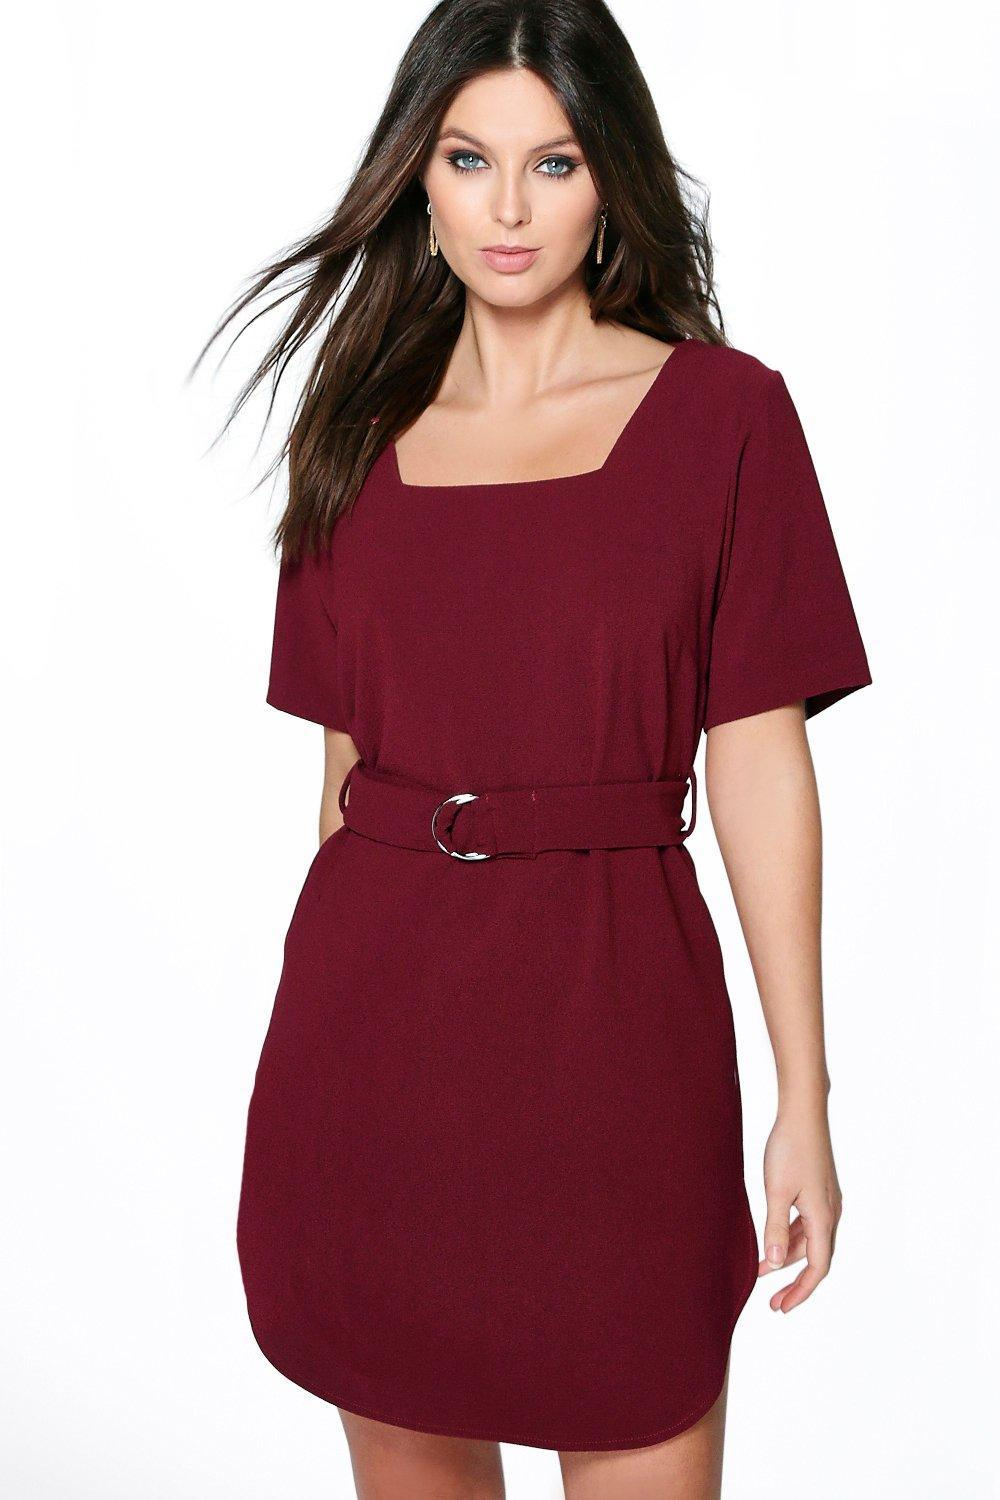 Buckle Detail Curved Hem Shift Dress Teal - style: shift; length: mid thigh; pattern: plain; waist detail: belted waist/tie at waist/drawstring; predominant colour: burgundy; fit: body skimming; fibres: polyester/polyamide - 100%; sleeve length: short sleeve; sleeve style: standard; neckline: medium square neck; pattern type: fabric; texture group: other - light to midweight; occasions: creative work; season: s/s 2016